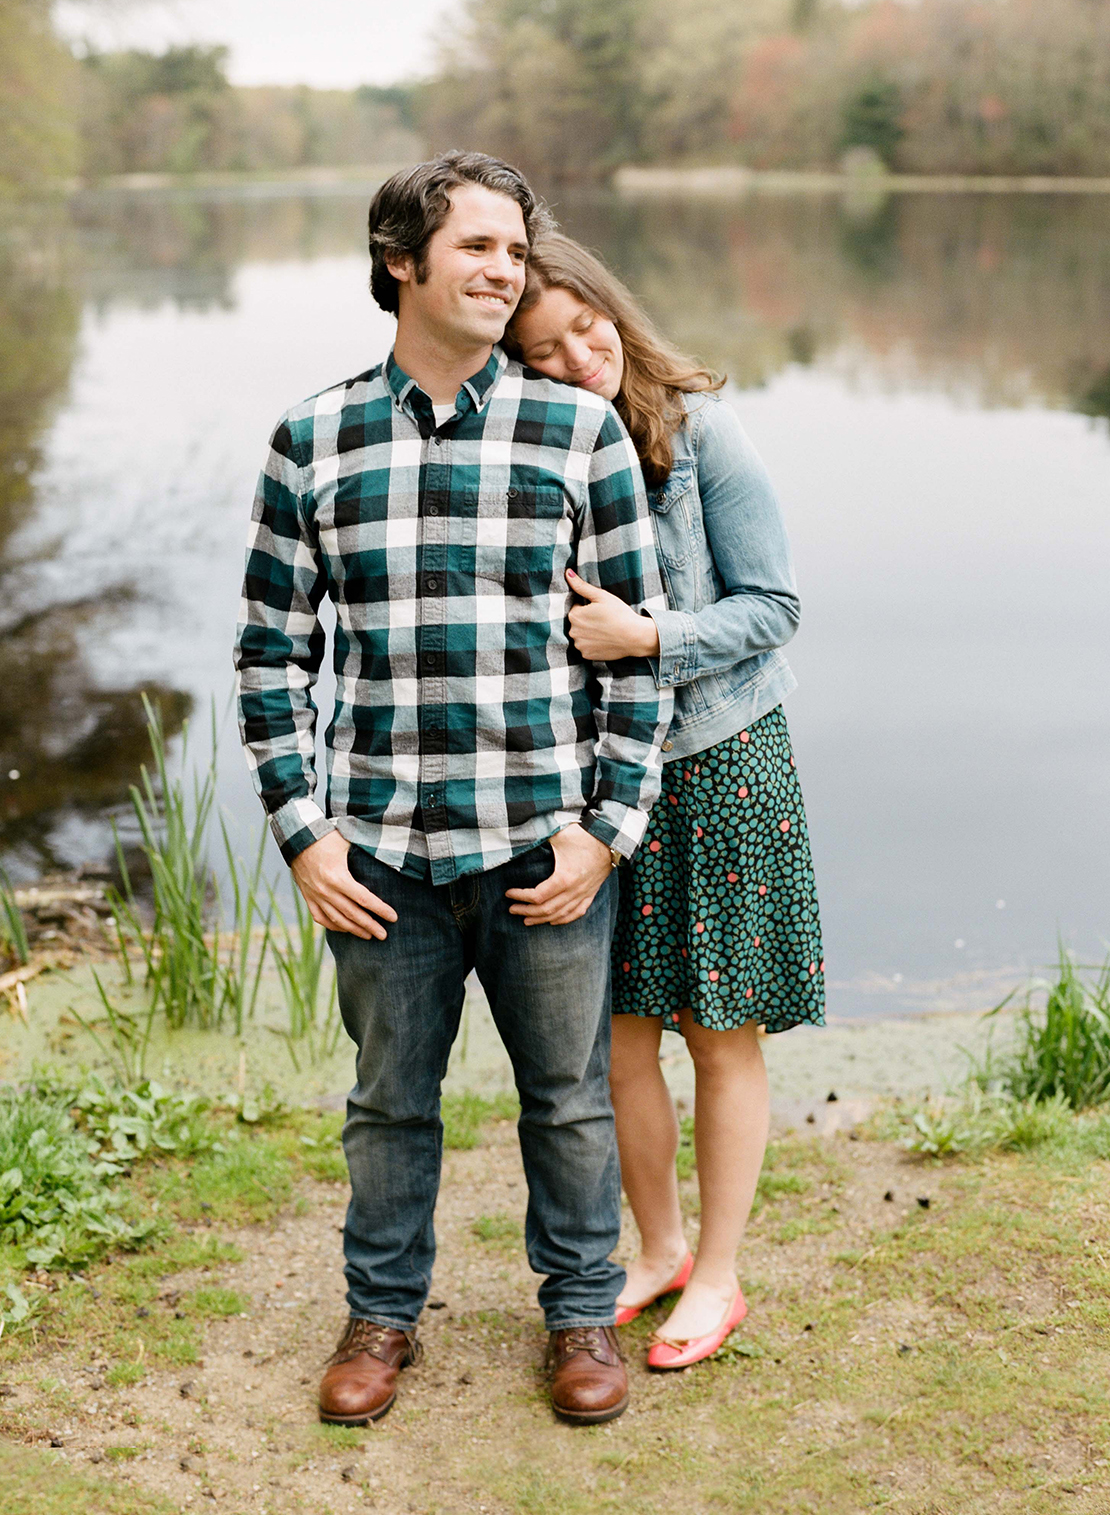 08_orlando_wedding_photographer_heidi_vail_fine_art_engagement_session_sudbury_massachusetts